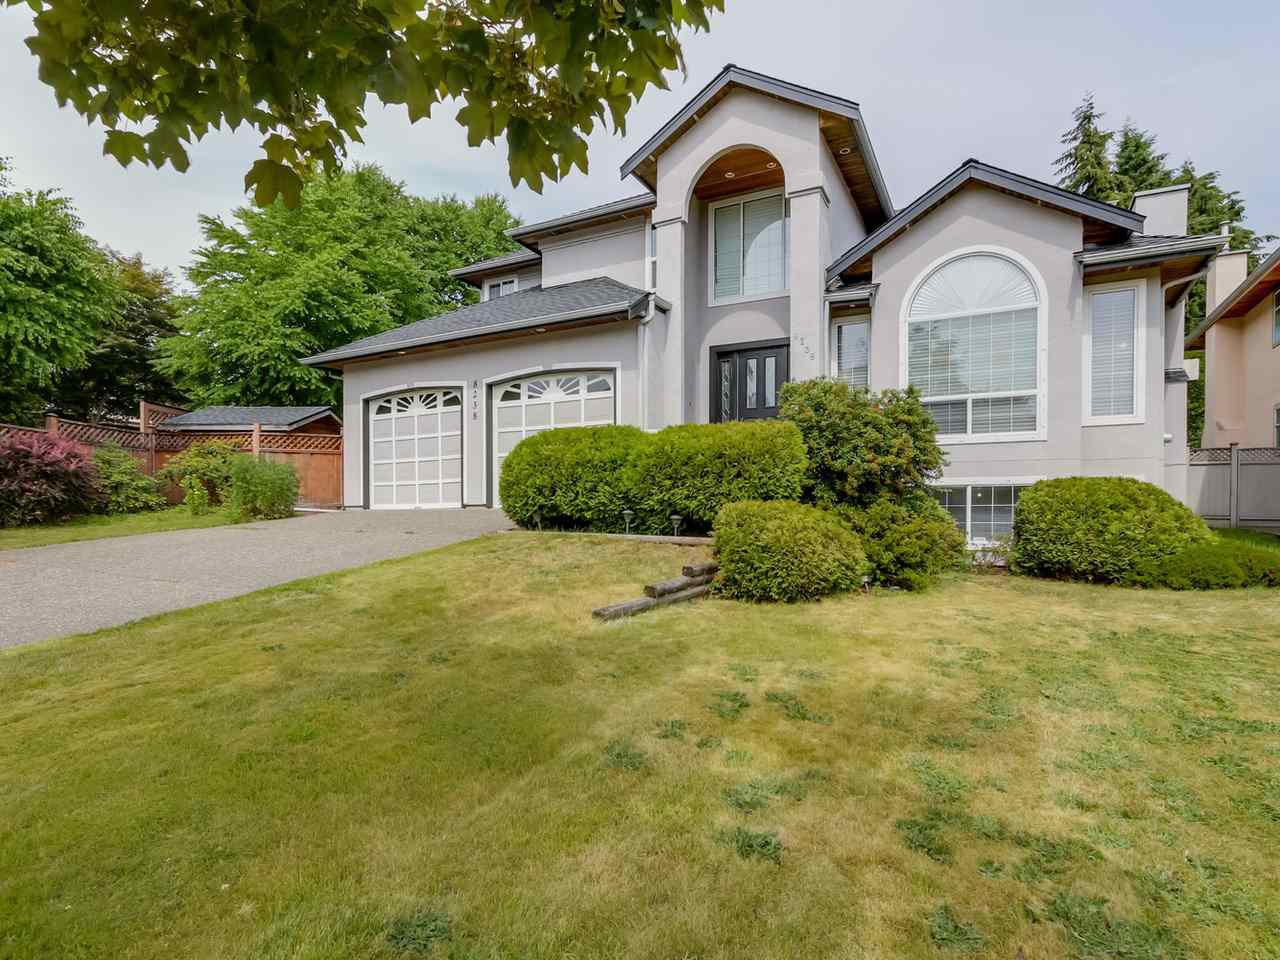 """Main Photo: 8238 149 Street in Surrey: Bear Creek Green Timbers House for sale in """"SHAUGHNESSY"""" : MLS®# R2078750"""